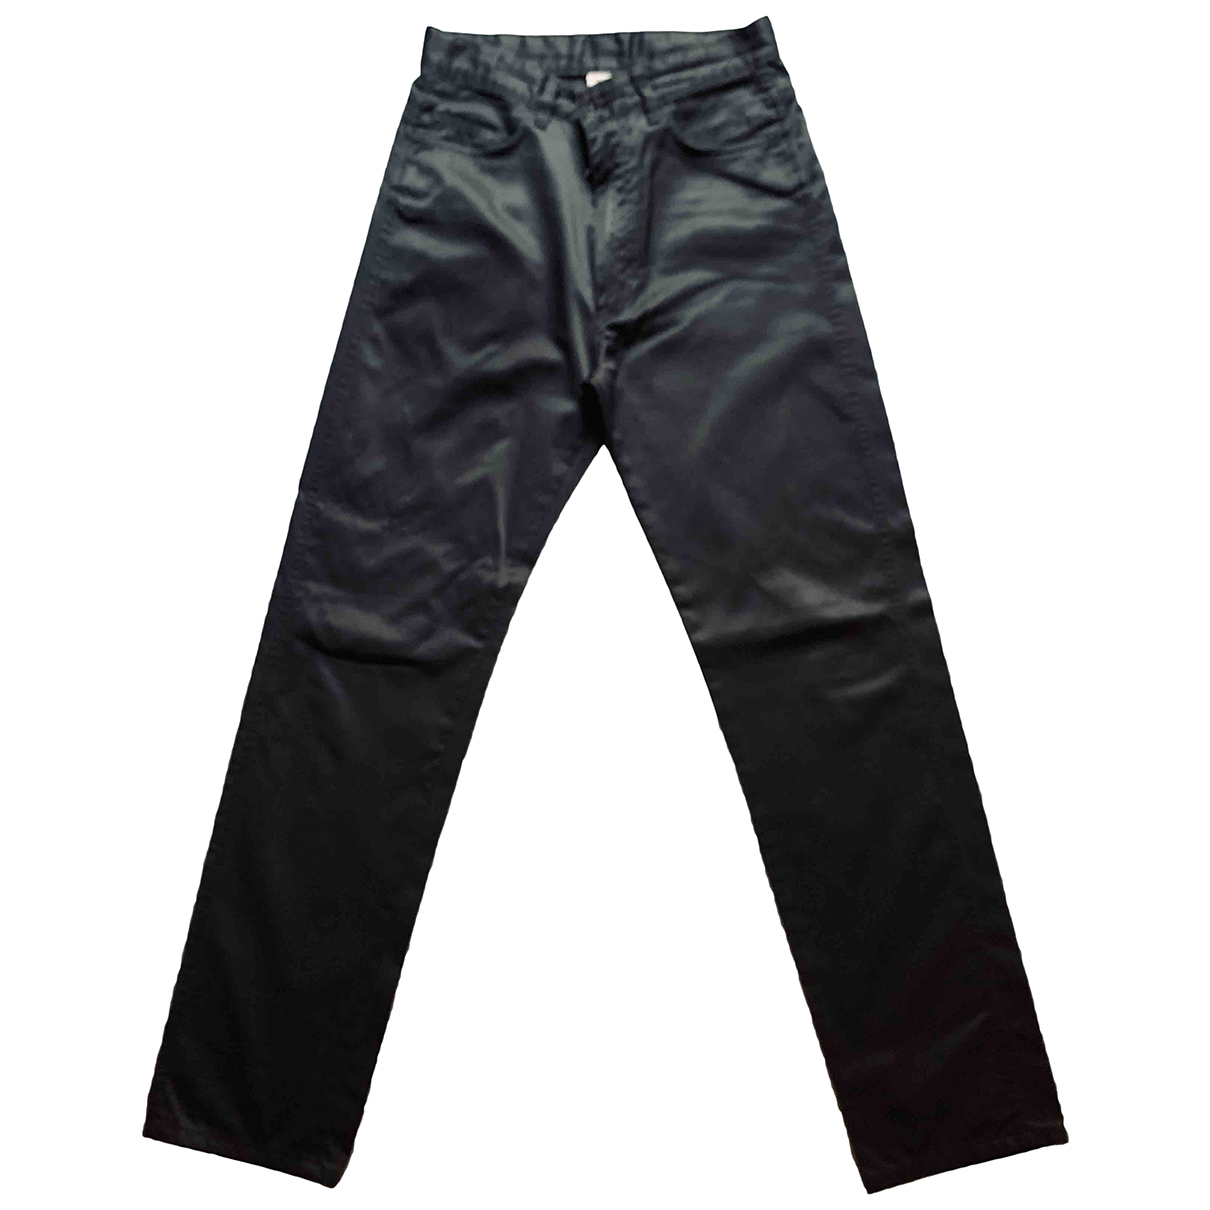 Jean Paul Gaultier N Black Cotton Trousers for Men S International